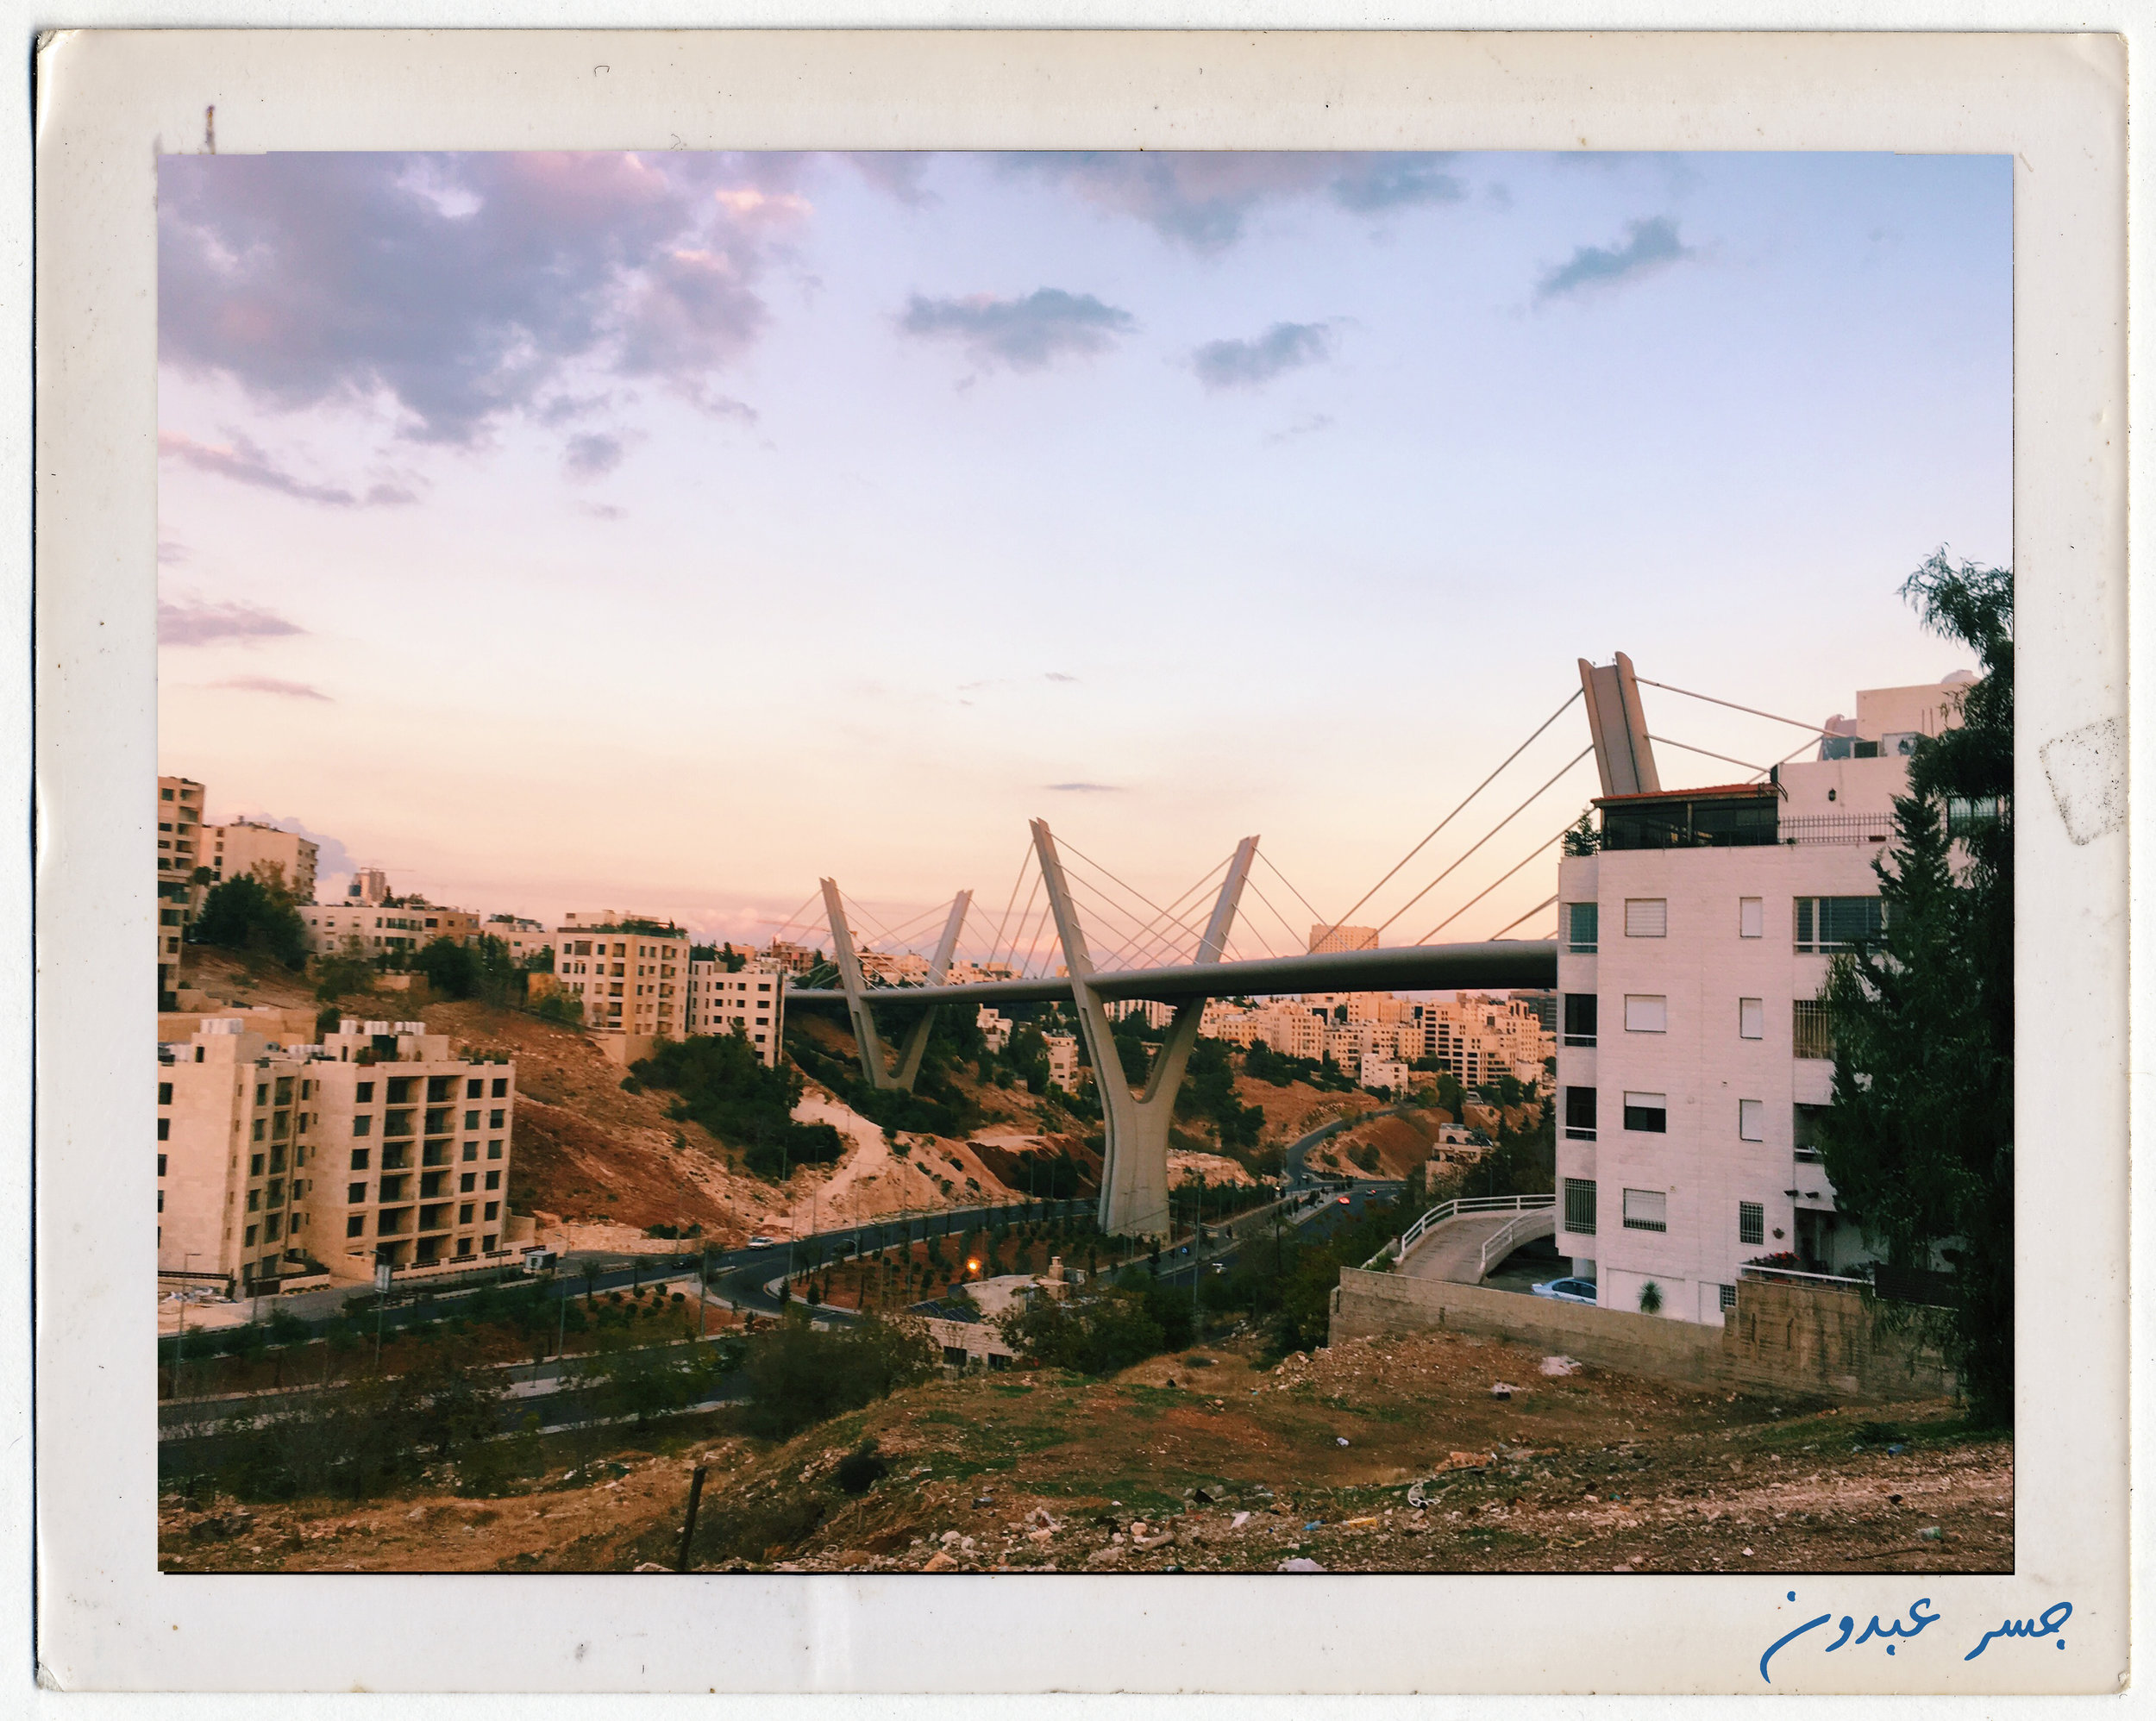 I've taken  many  pictures of the Abdoun Bridge in Amman but this one is probably my favorite. Now that it's fall and the sun sets much earlier, the views on my walk home from Amideast are bathed in golden light. Photo credit: L. McGuire, Fall 2018